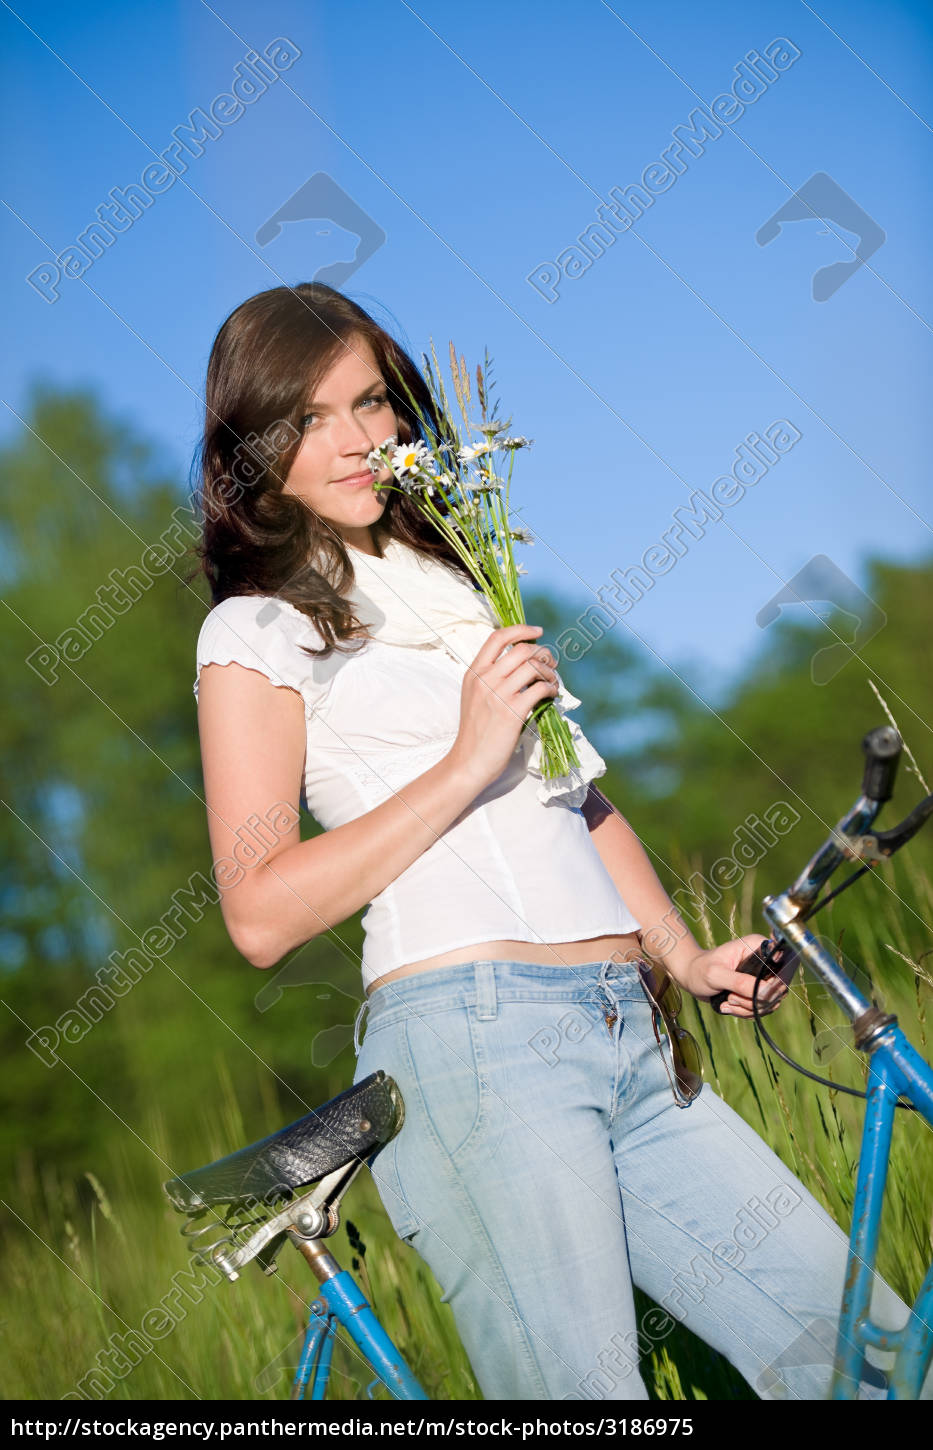 woman, with, old-fashioned, bike, in, meadow - 3186975